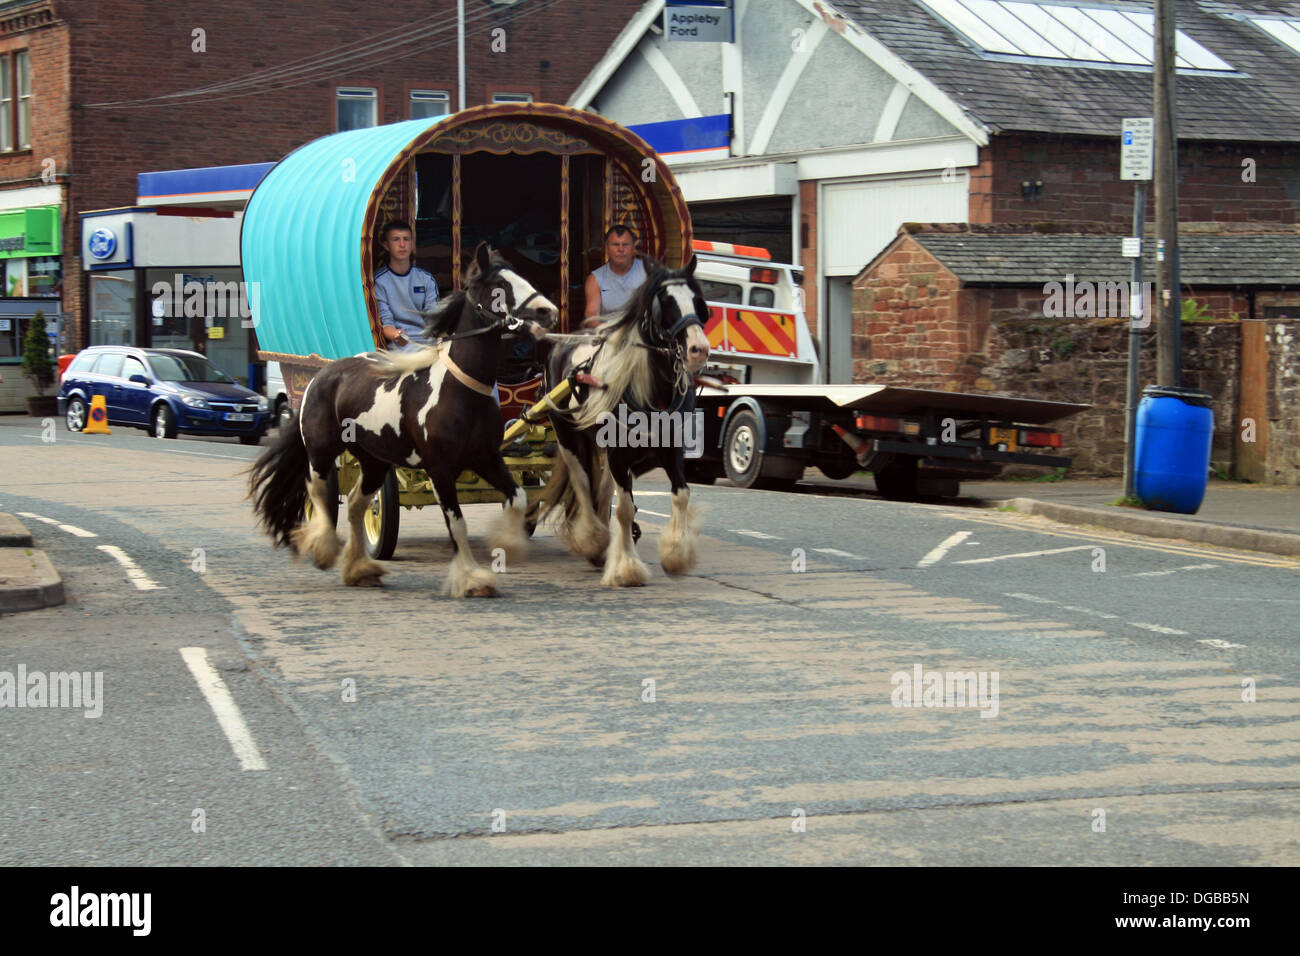 Gypsies Gather For Appleby Horse Fair Stock Photo | Getty Images